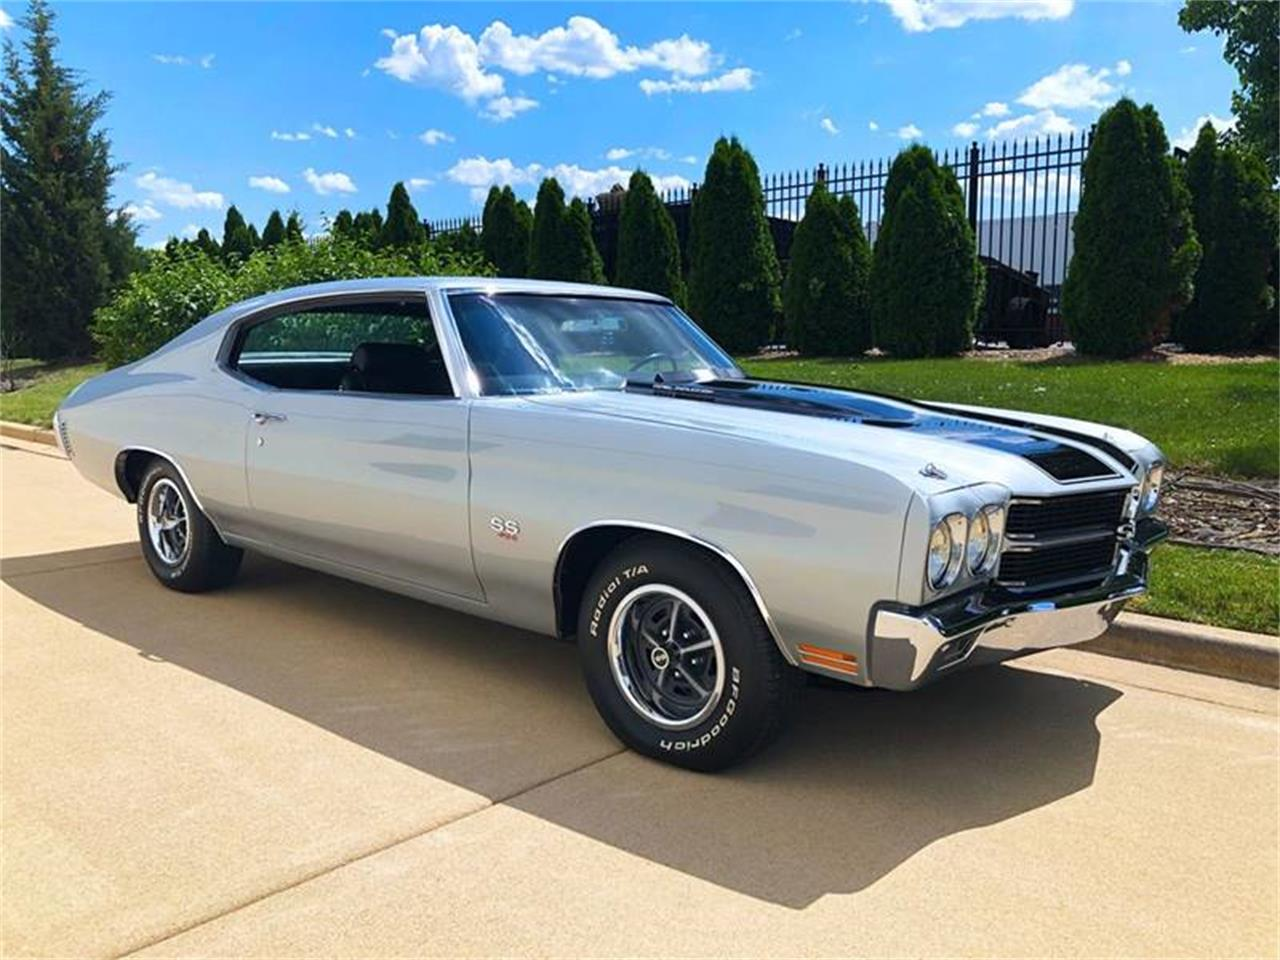 For Sale: 1970 Chevrolet Chevelle in Burr Ridge, Illinois